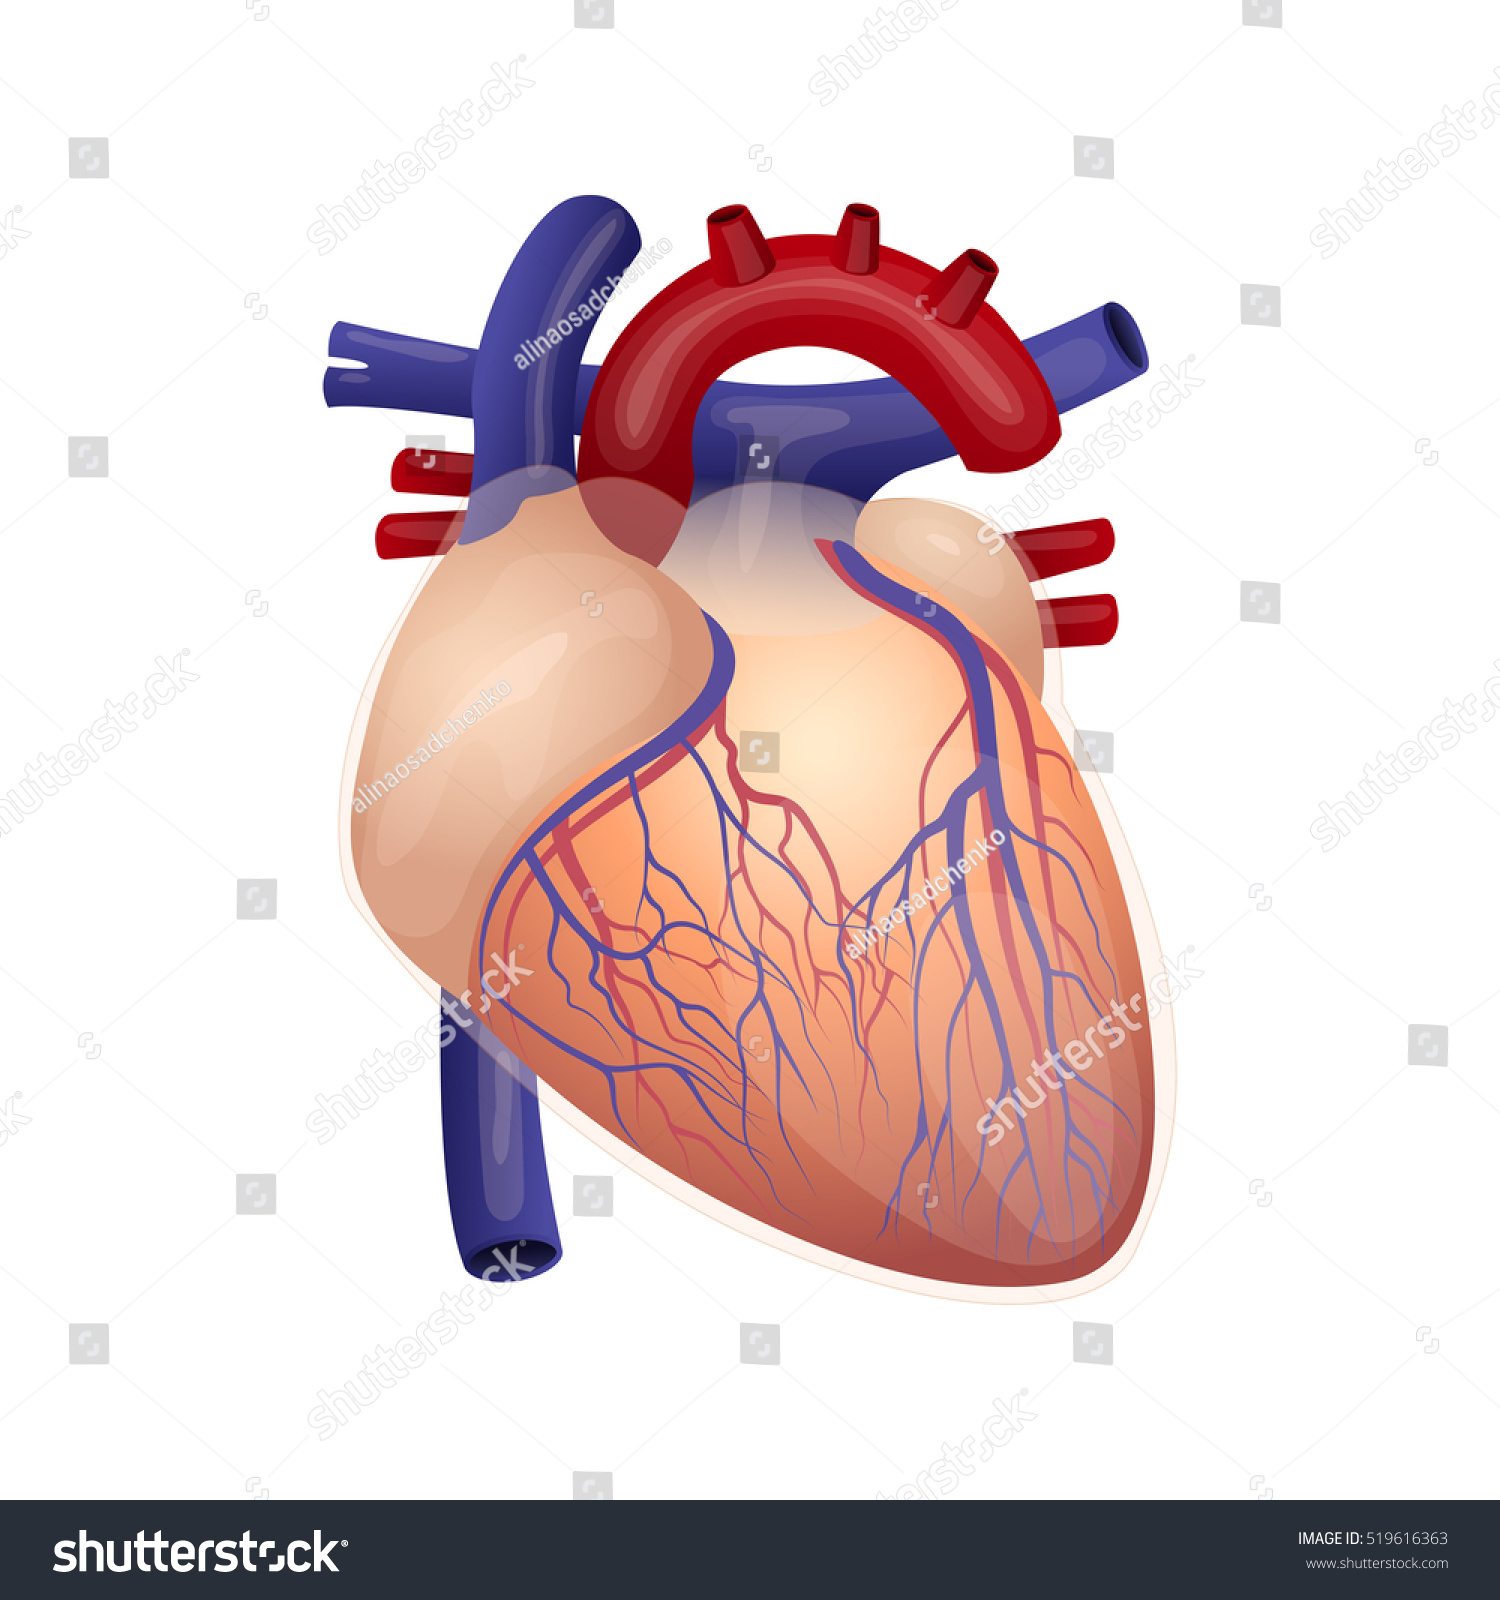 Illustration Of The Humans Heart Humans Organ The Cardiovascular